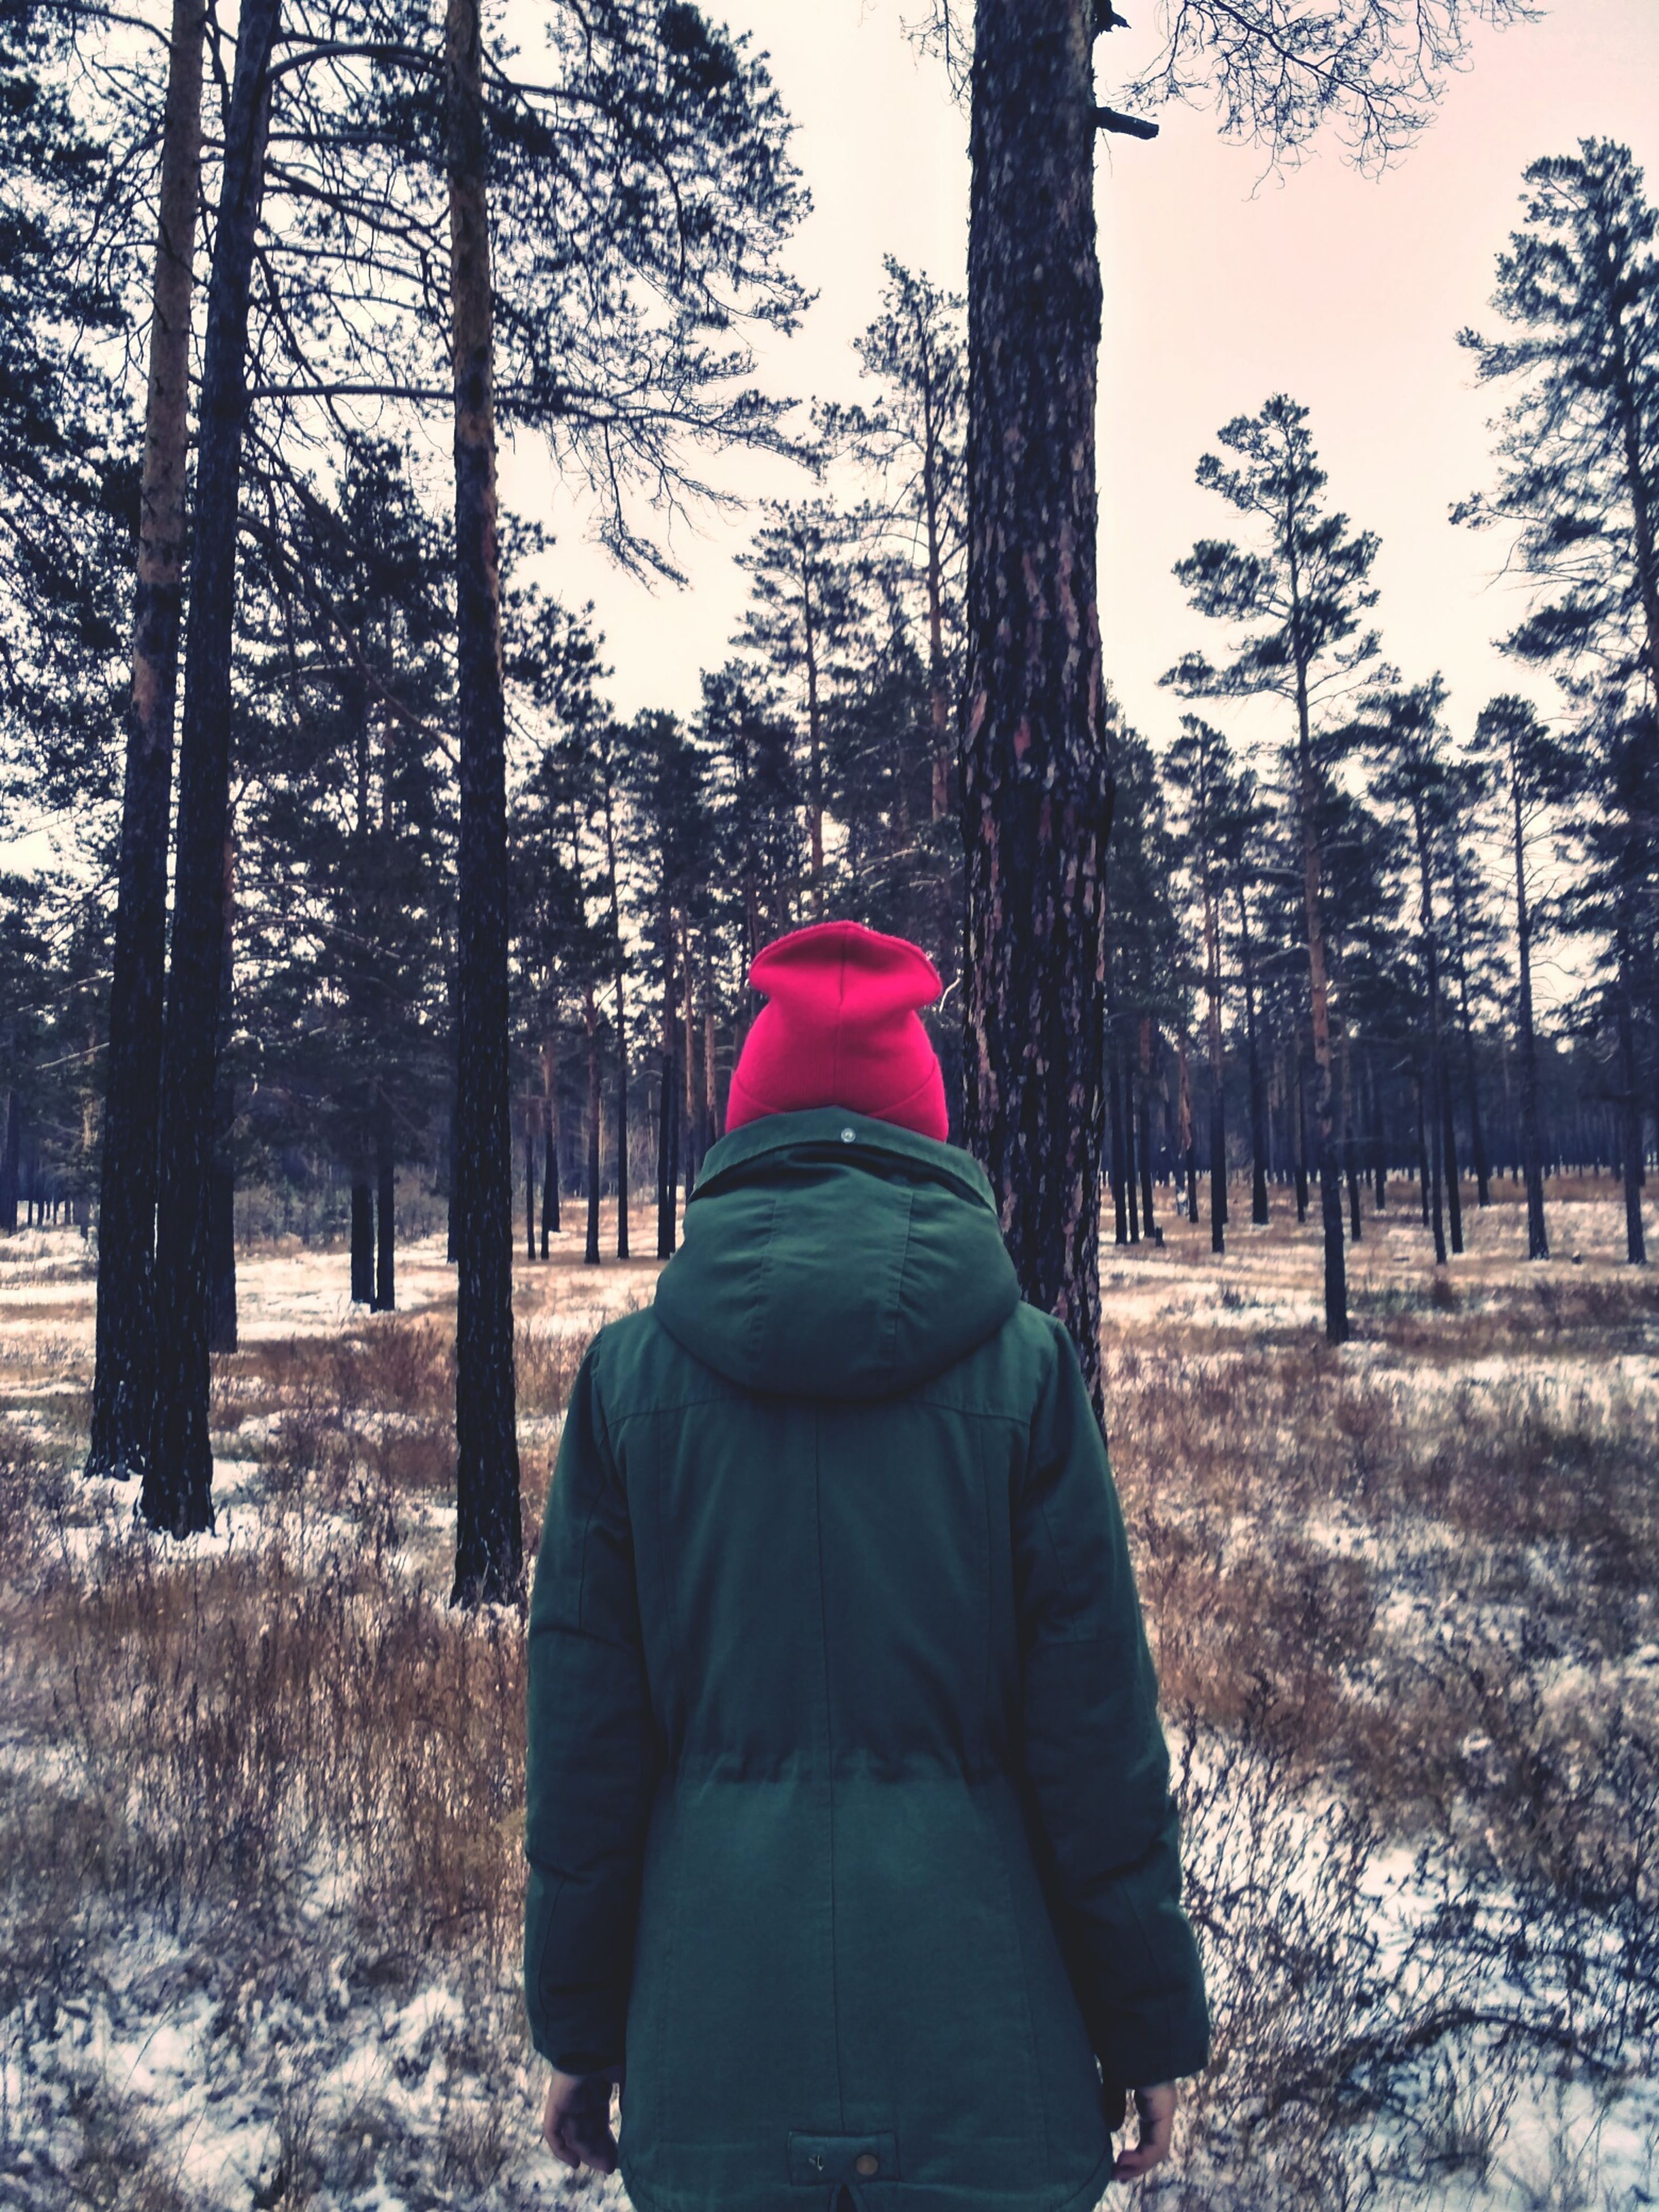 tree, cold temperature, winter, warm clothing, rear view, one person, tree trunk, red, day, outdoors, nature, people, snow, adult, adults only